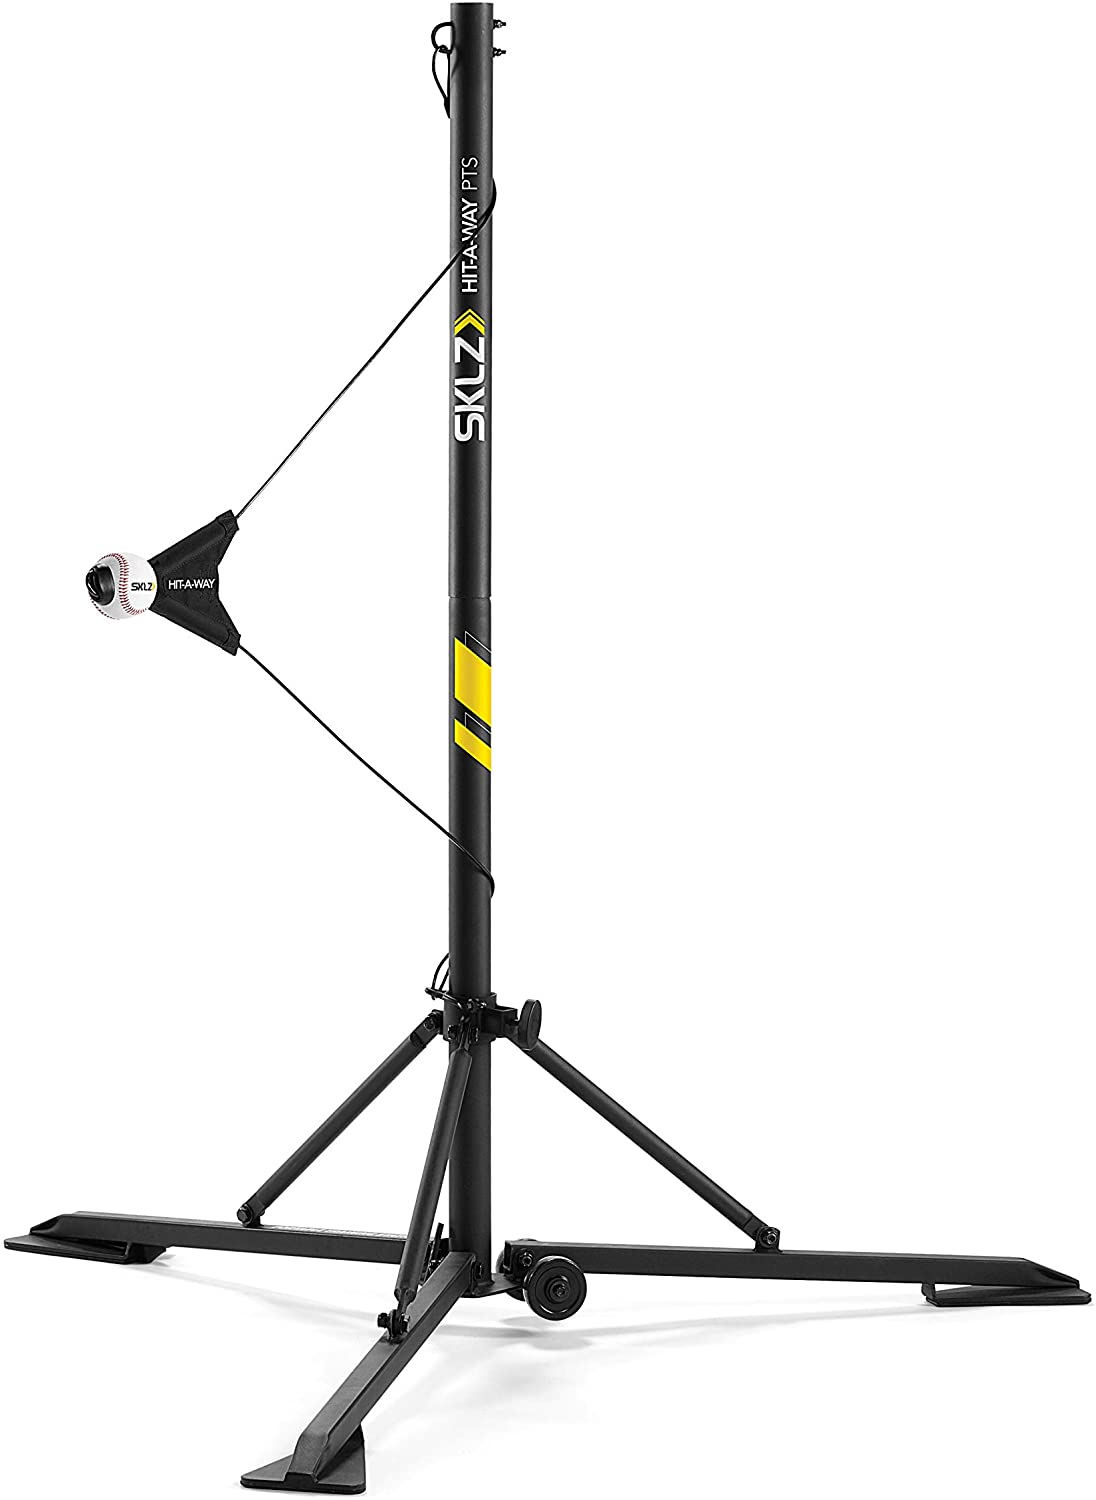 SKLZ Hit-A-Way Portable Baseball Training-Station Swing Trainer with Stand : Baseball Batting Trainers : Sports & Outdoors